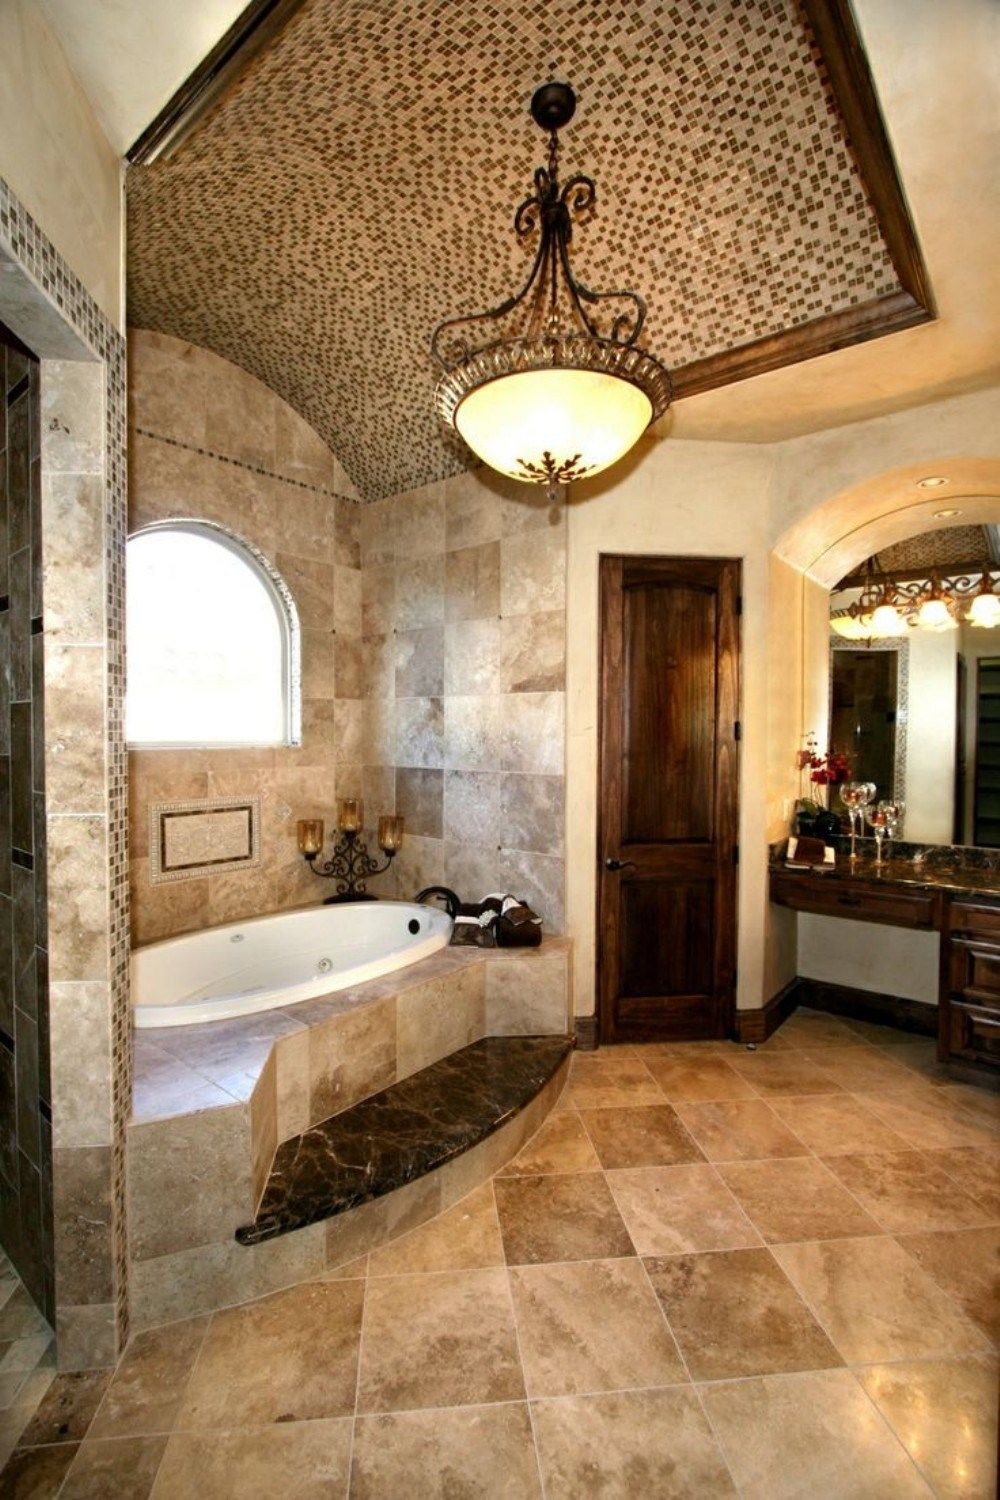 Luxurious Tuscan Bathroom Decor Ideas 1  Bathroom Ideas Pleasing Luxury Bathroom Decorating Ideas Decorating Design